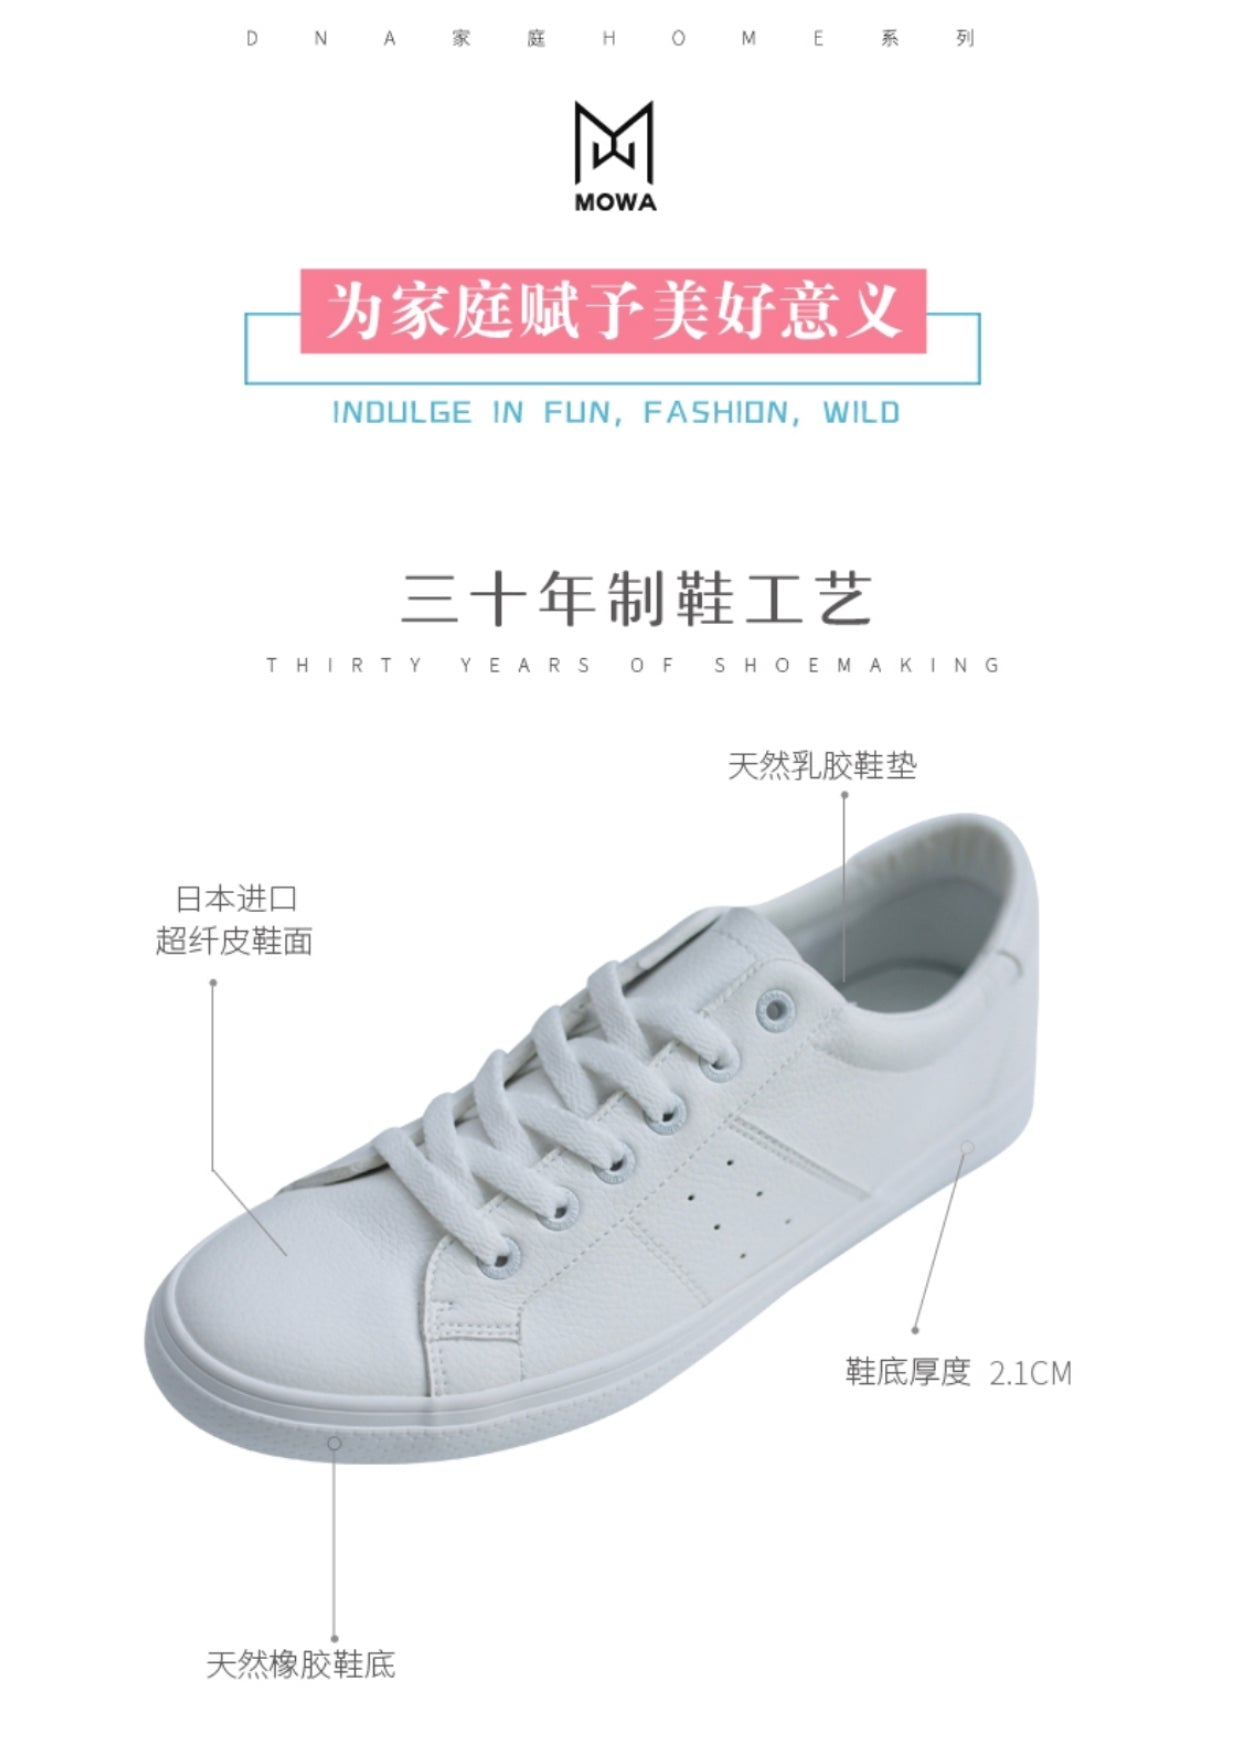 Mowa DNA White sneakers for men